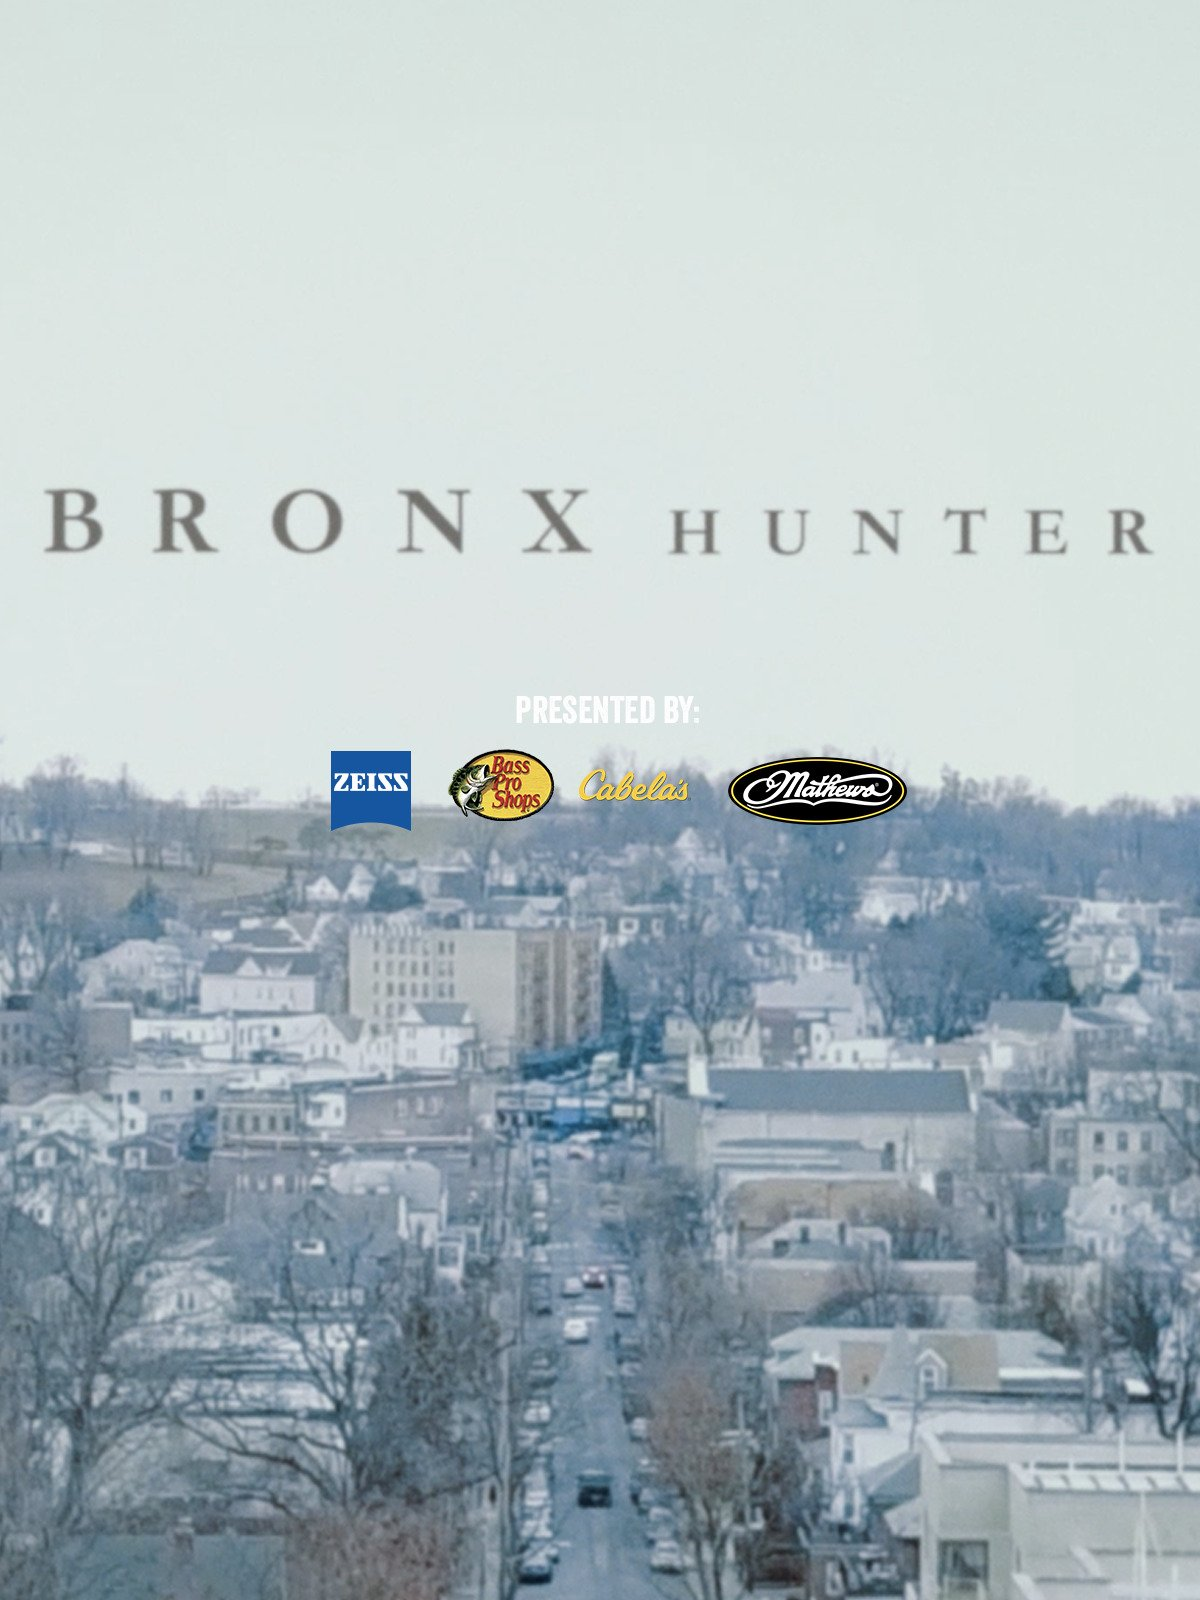 The Bronx Hunter